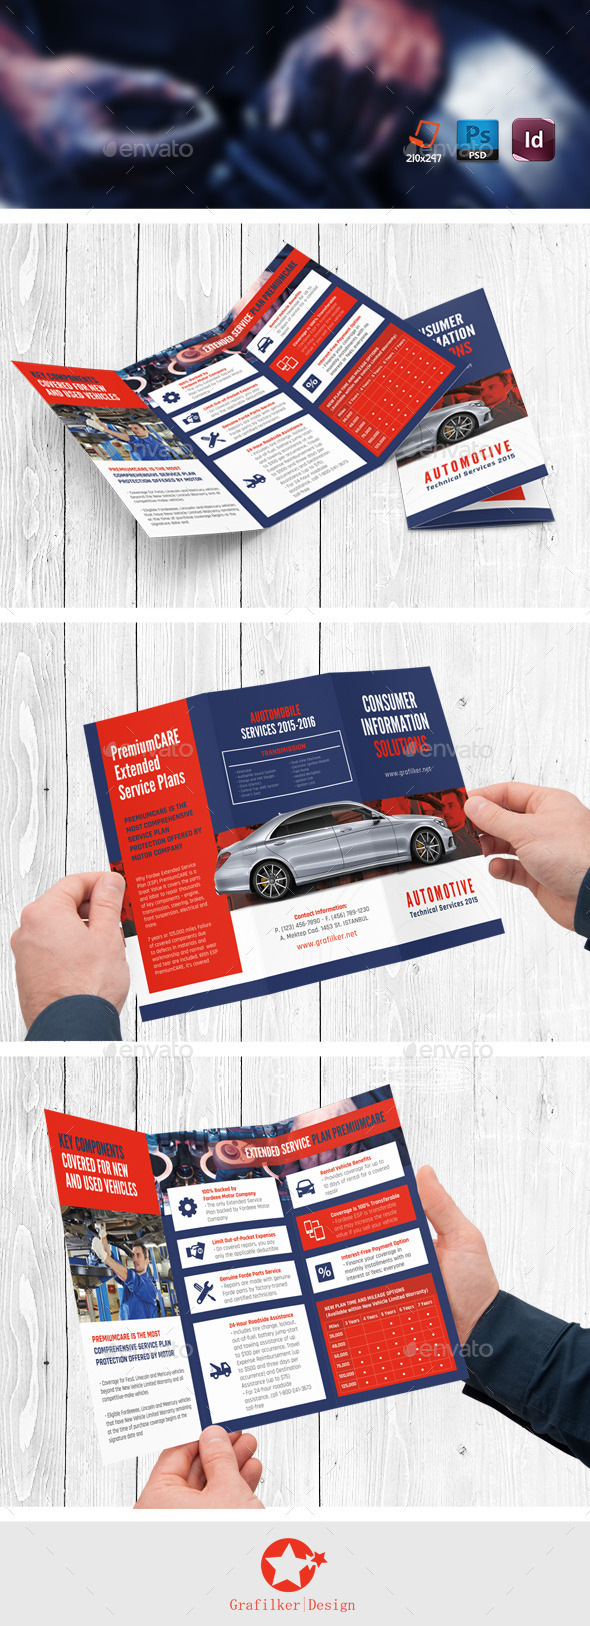 GraphicRiver Automobile Service Tri-Fold Templates 11173322